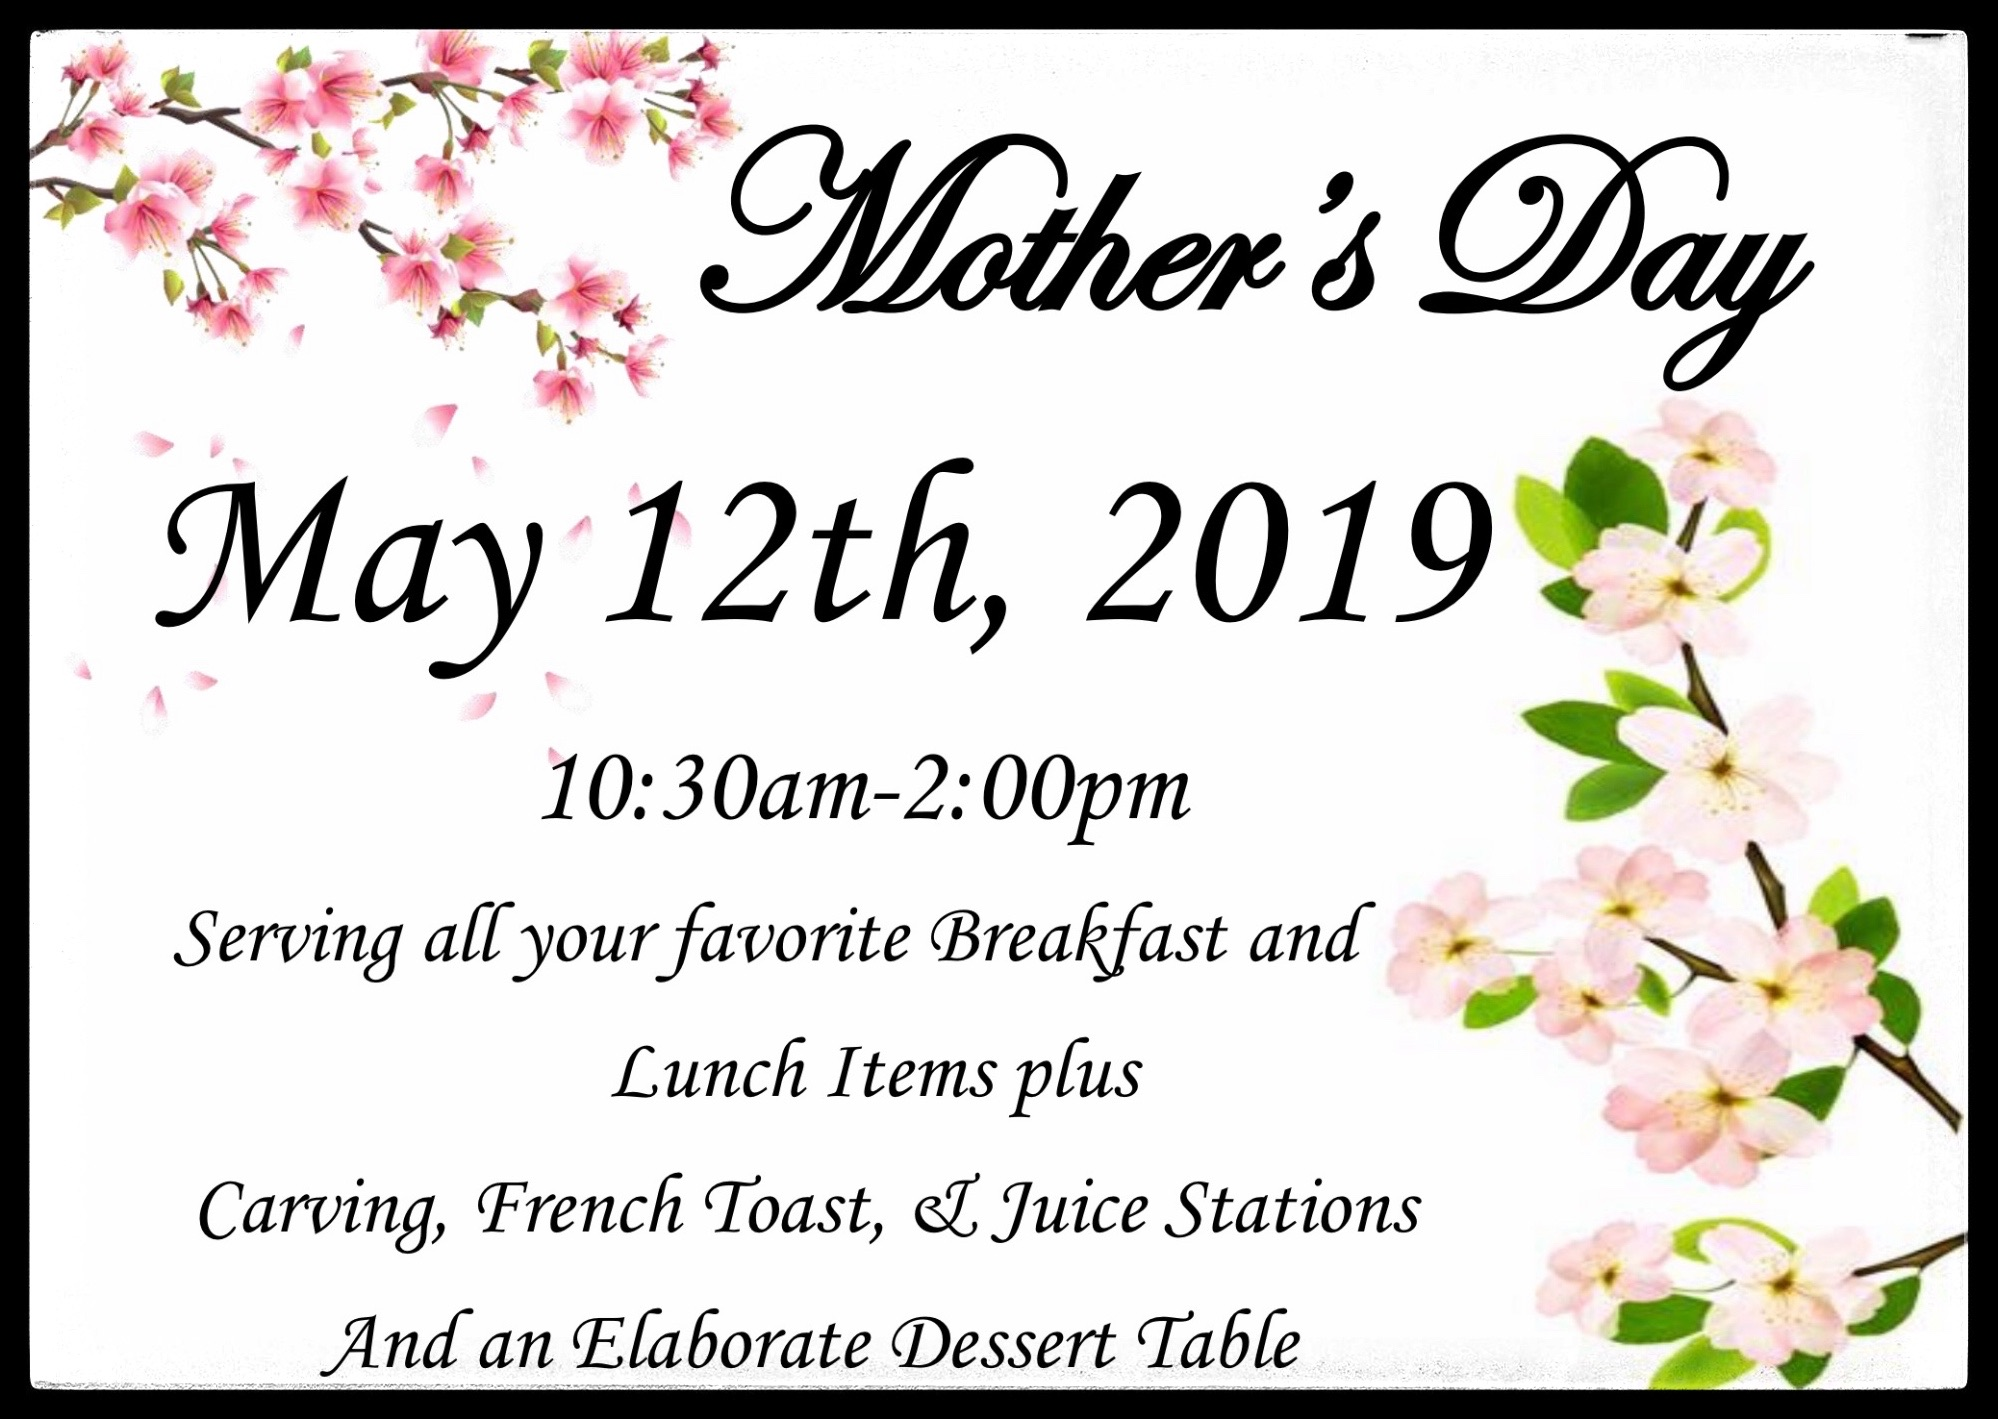 Mothers Day Banner 2019.JPG